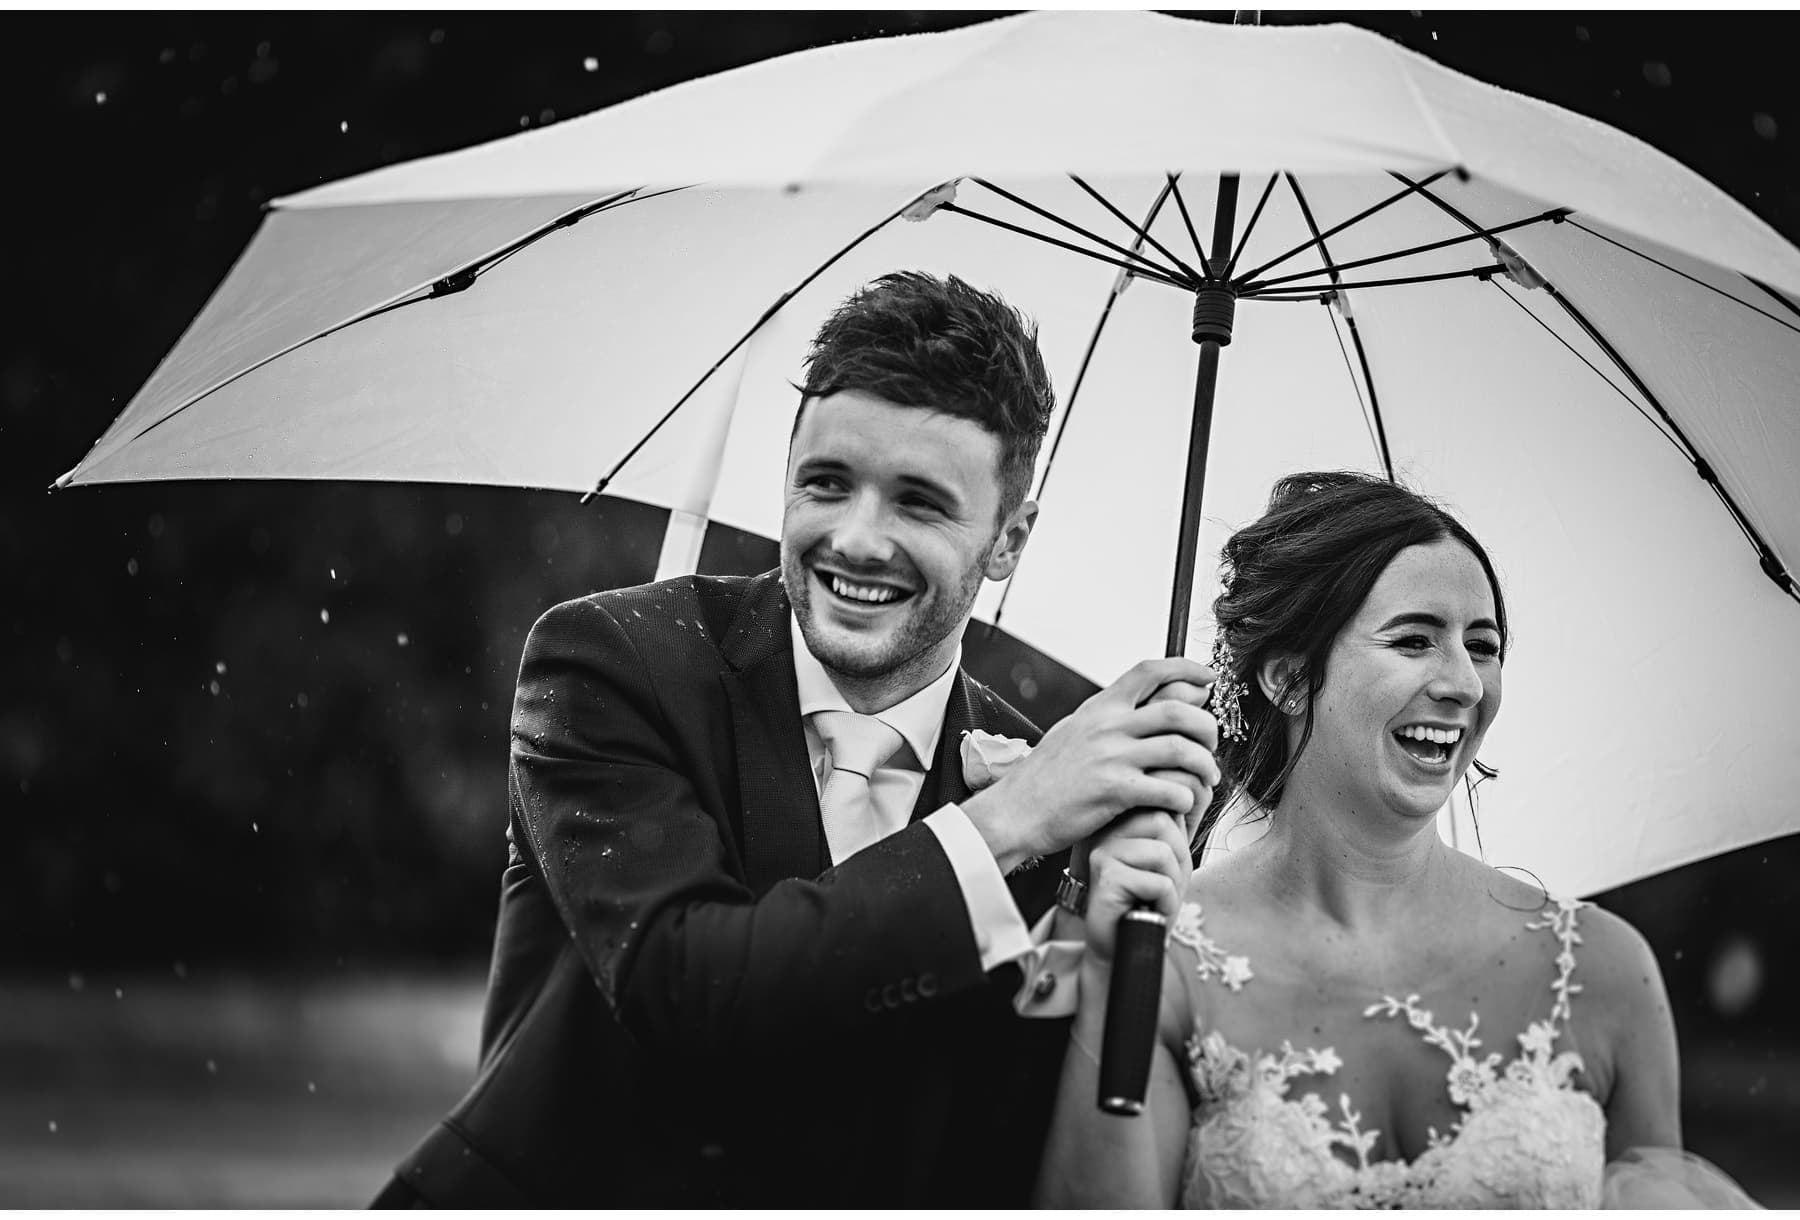 the bride & groom under an umbrella